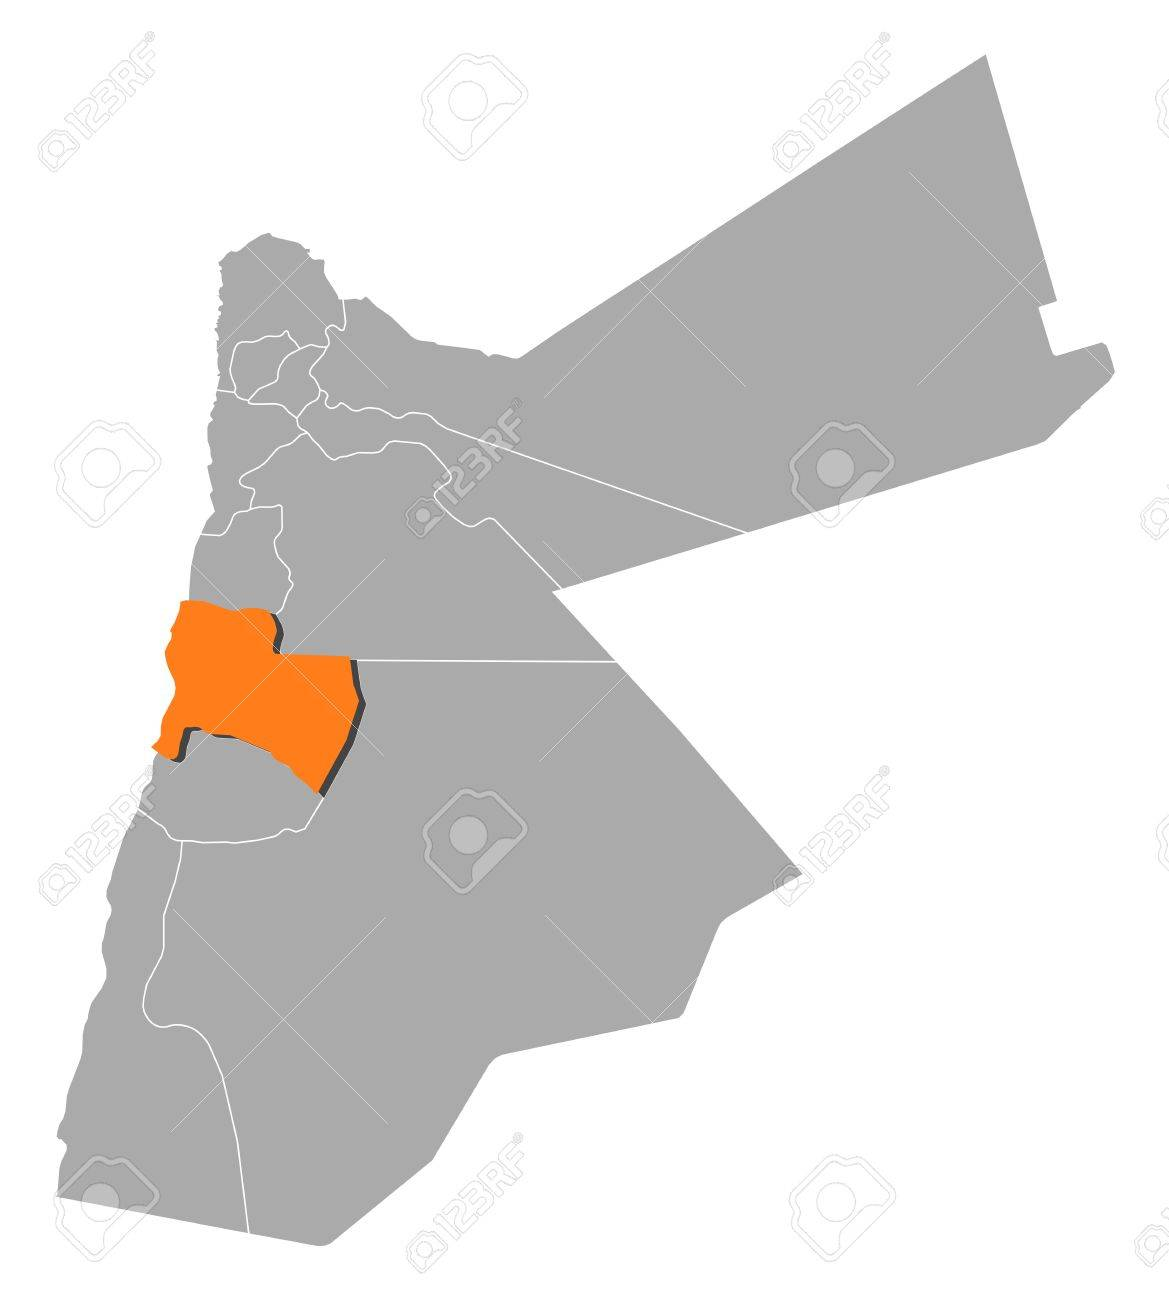 Political Map Of Jordan.Political Map Of Jordan With The Several Governorates Where Karak